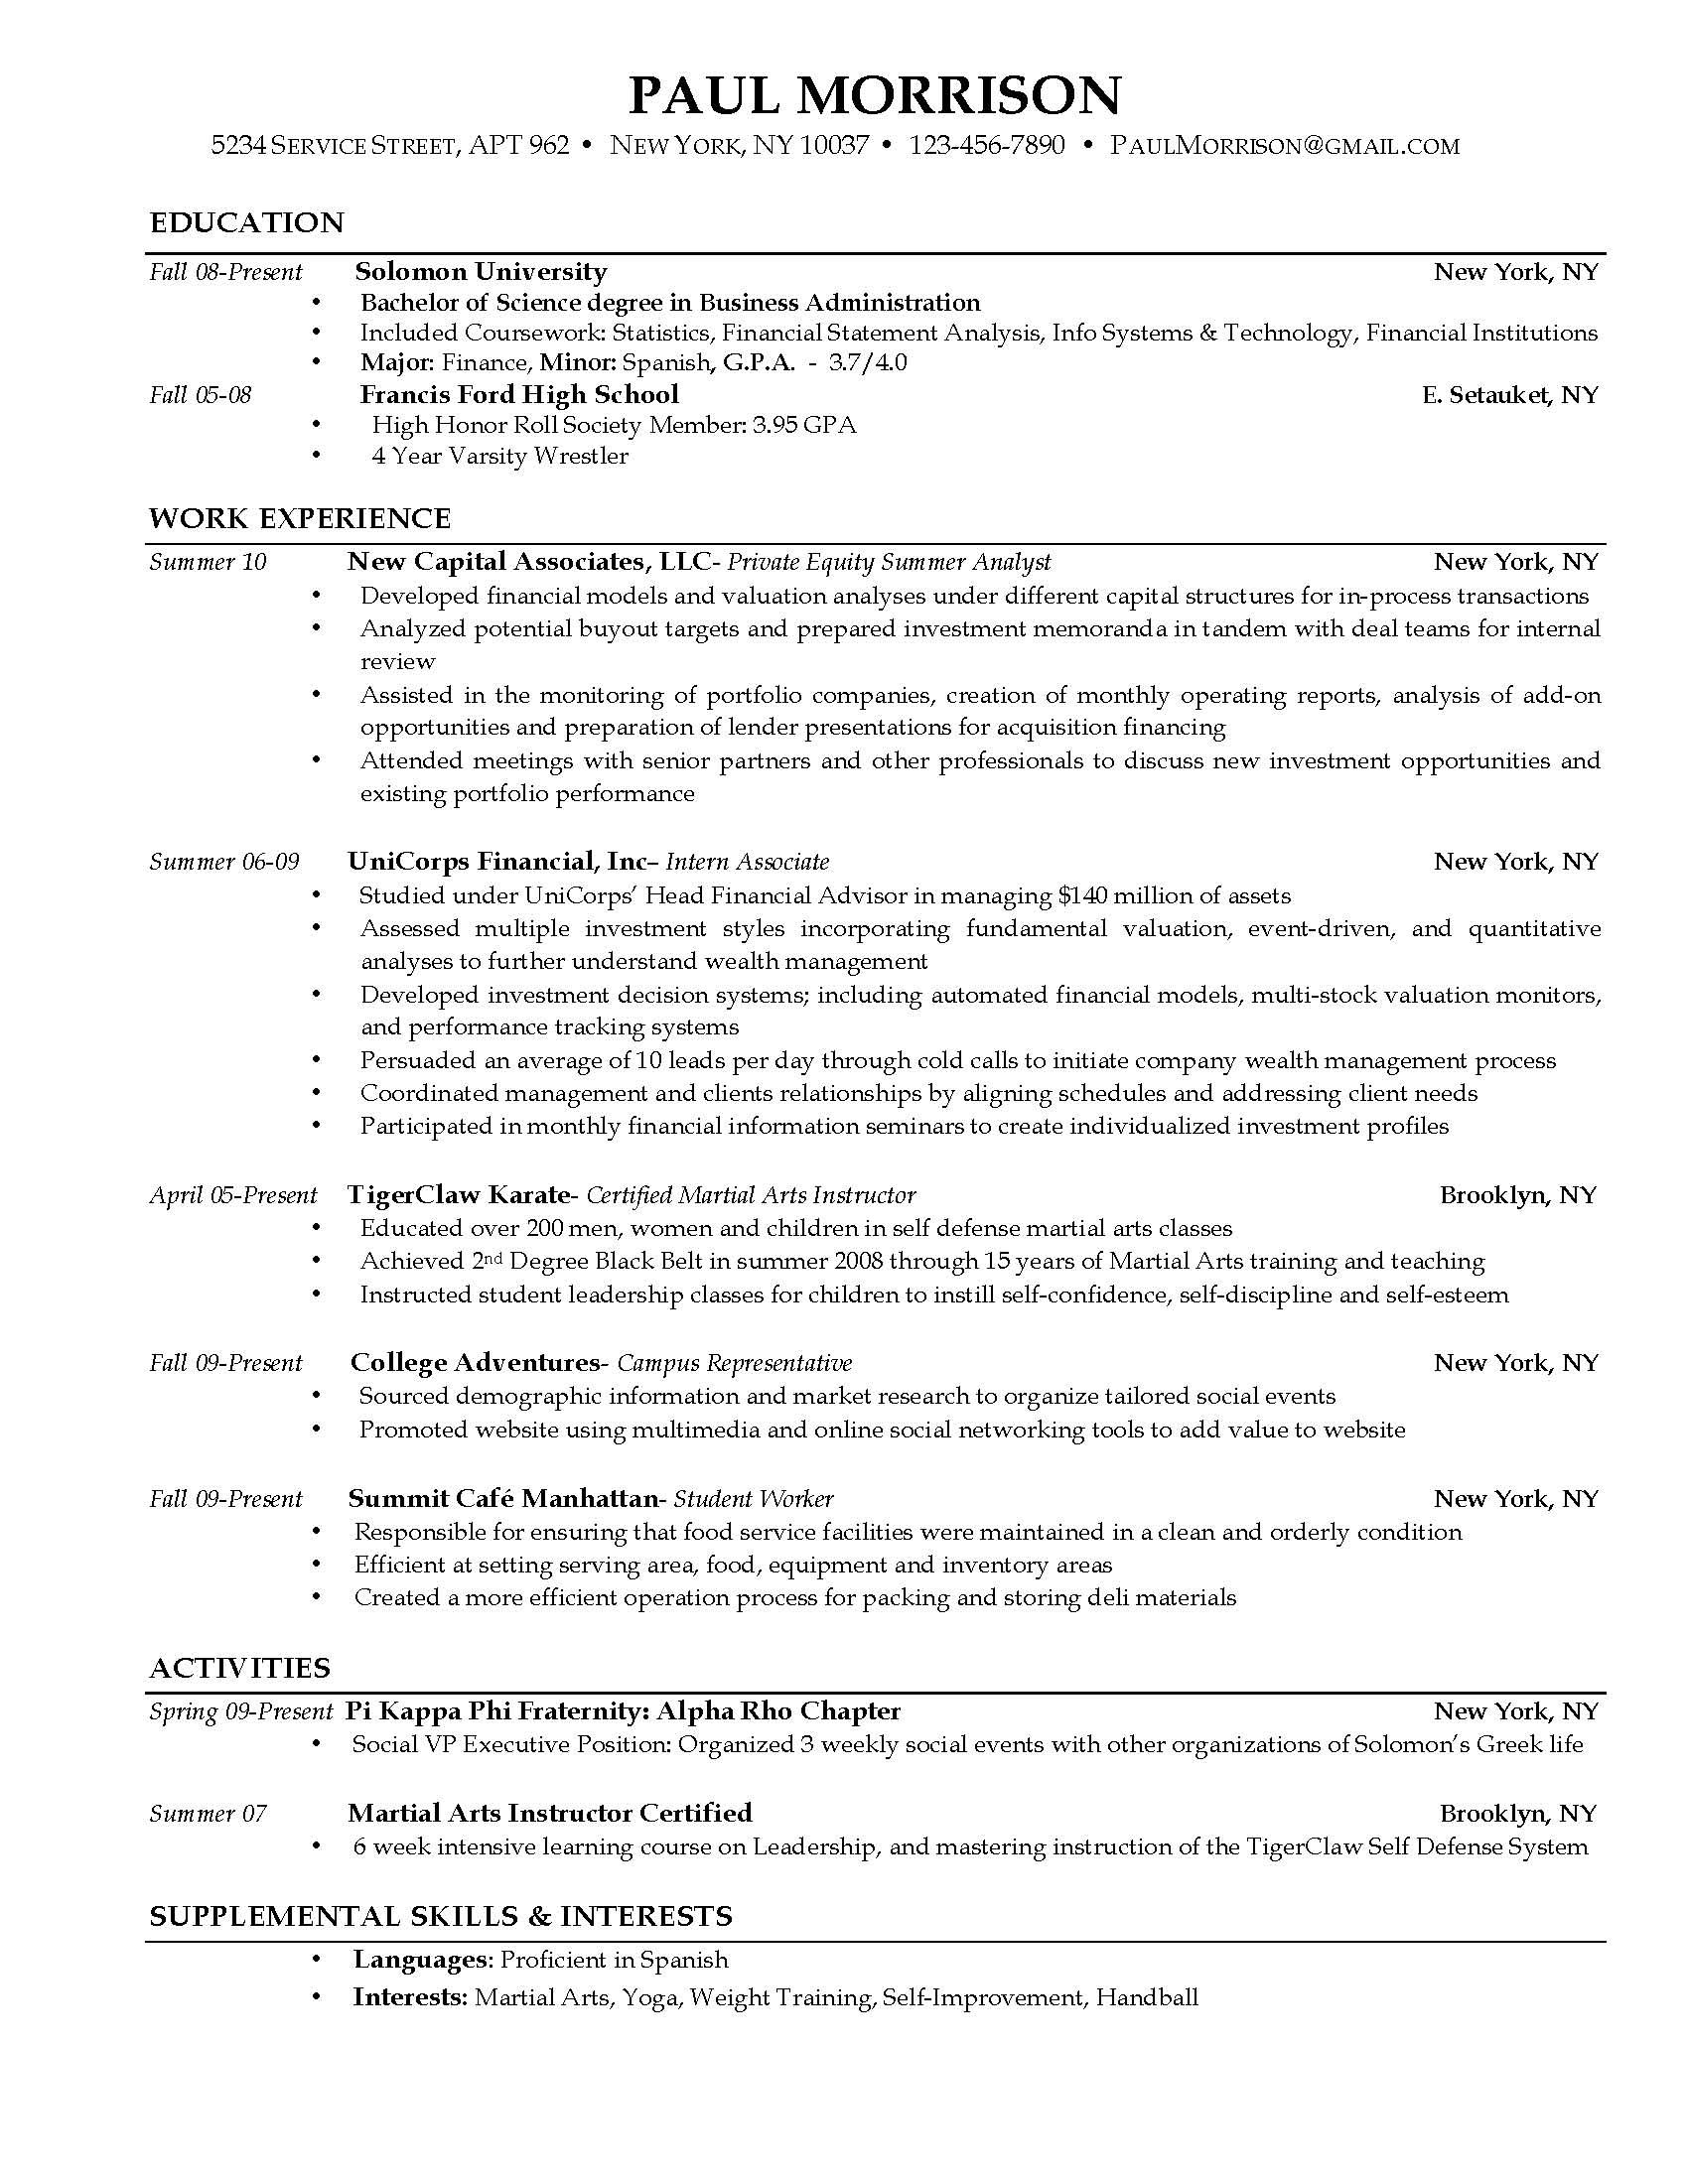 jethwear resume templates for college students word how to write httpwww - Sample Resume For Arts And Science Students